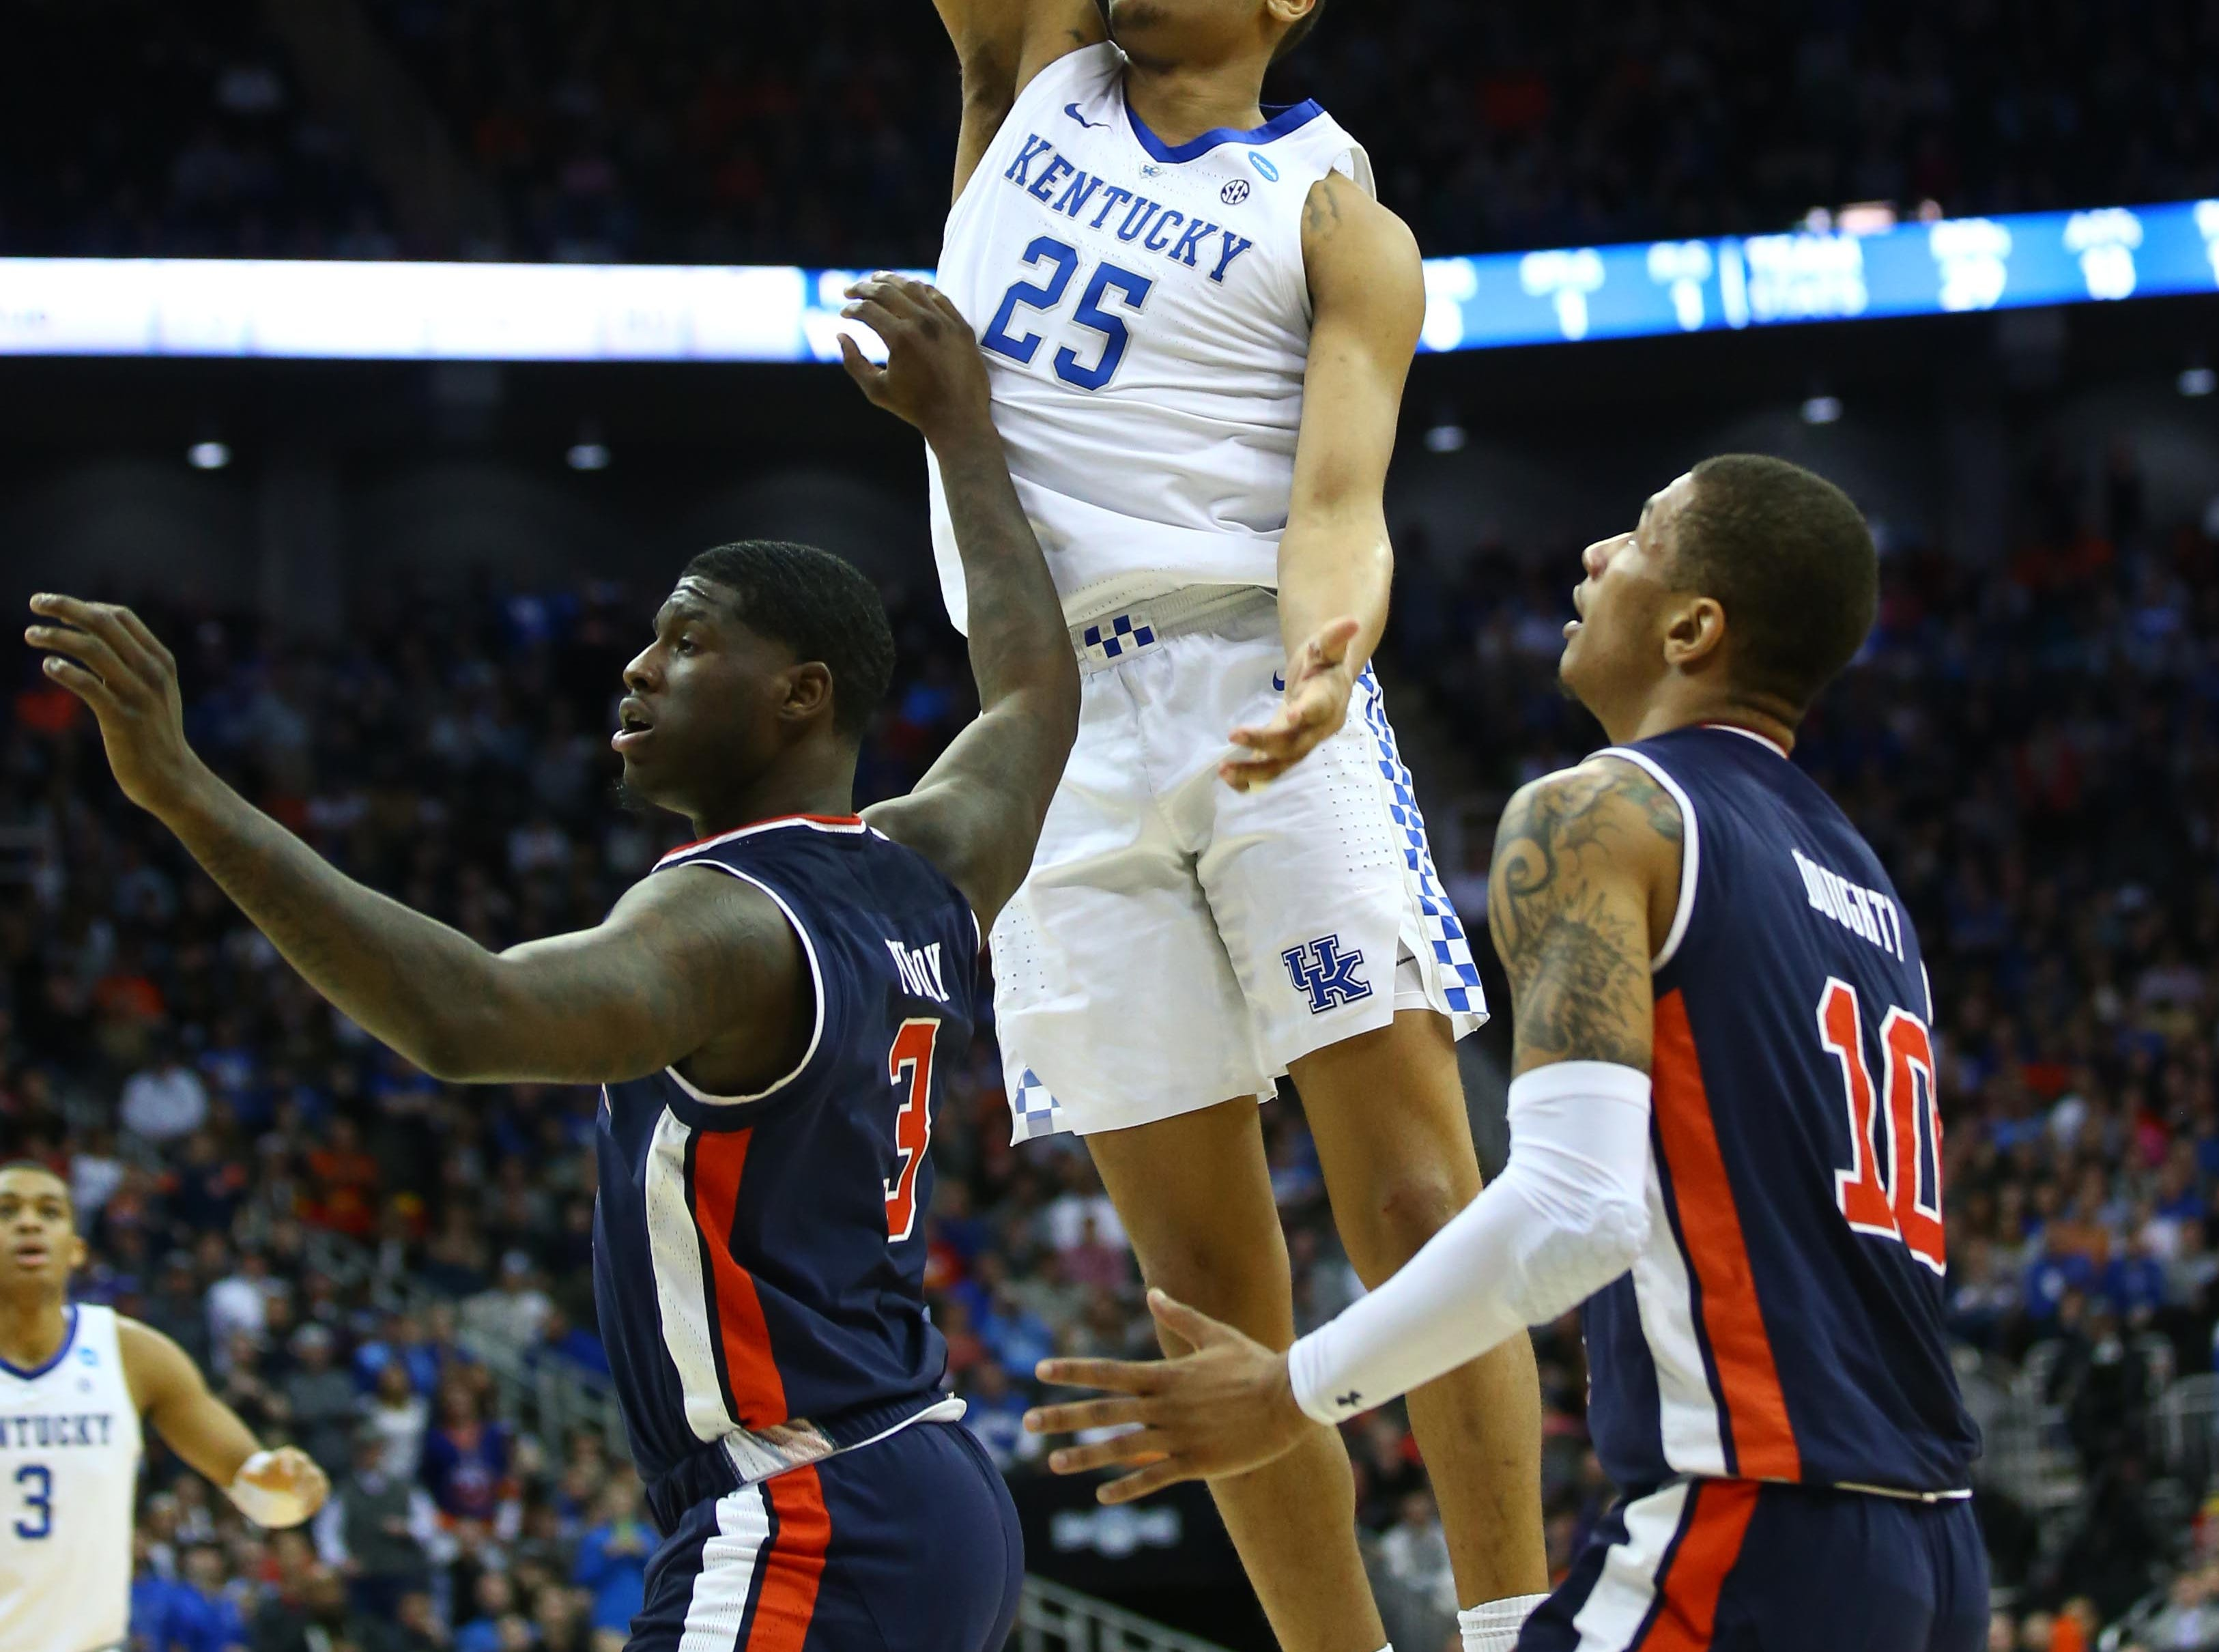 Mar 31, 2019; Kansas City, MO, United States; Kentucky Wildcats forward PJ Washington (25) shoots over Auburn Tigers forward Danjel Purifoy (3) and guard Samir Doughty (10) during the second half in the championship game of the midwest regional of the 2019 NCAA Tournament at Sprint Center. Mandatory Credit: Jay Biggerstaff-USA TODAY Sports